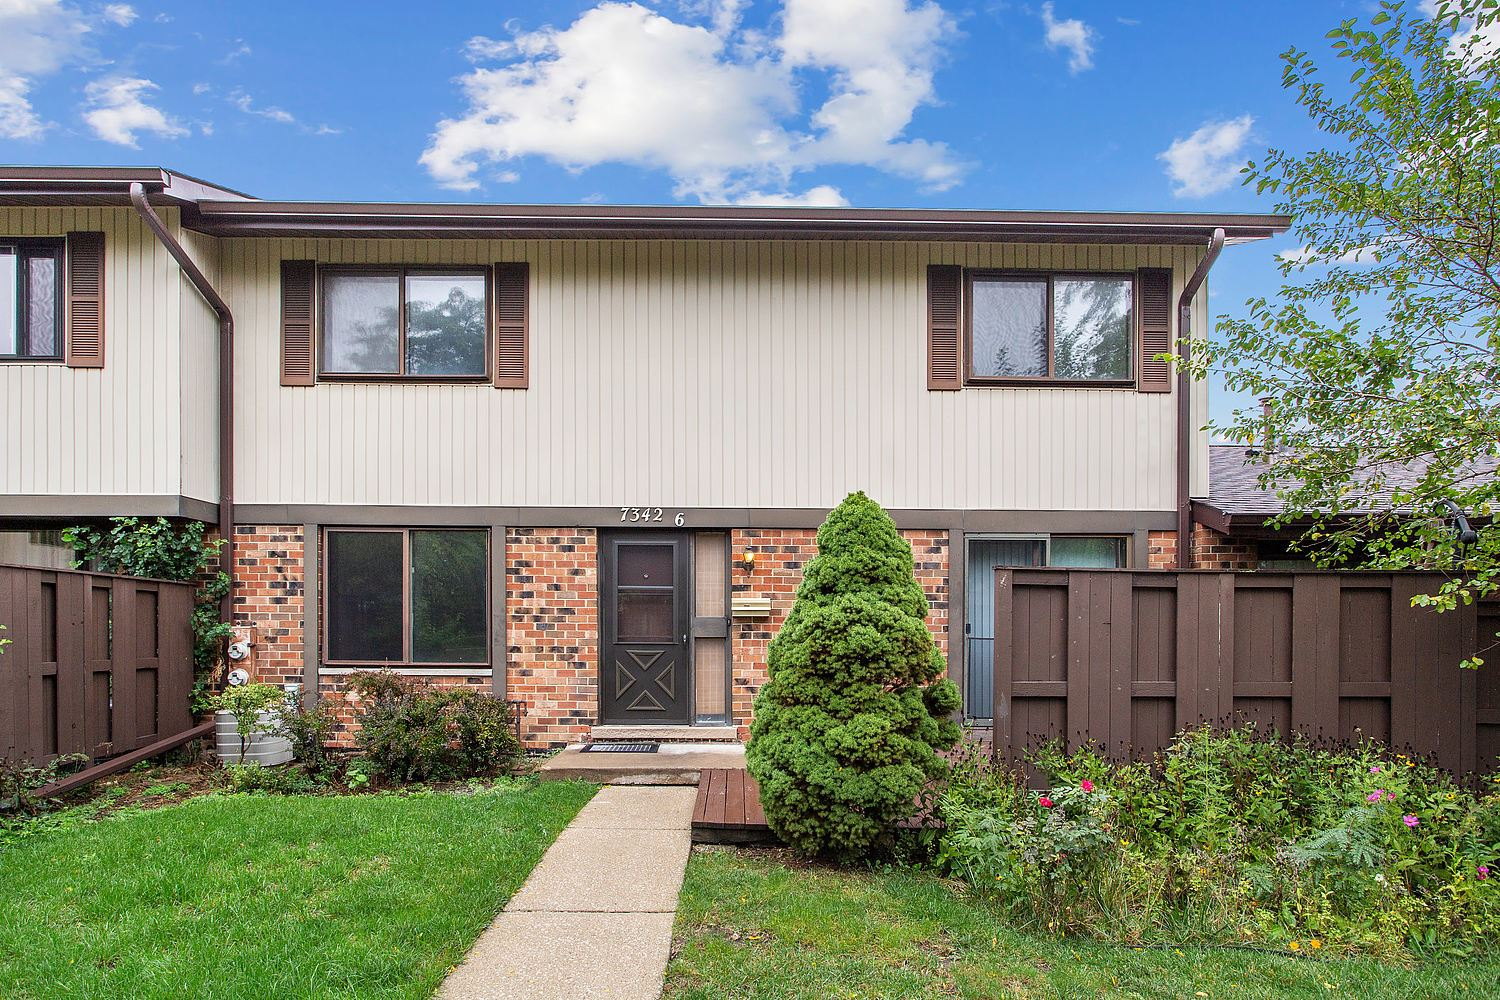 7342 Winthrop Way #6, Downers Grove, IL 60516 - #: 11245227